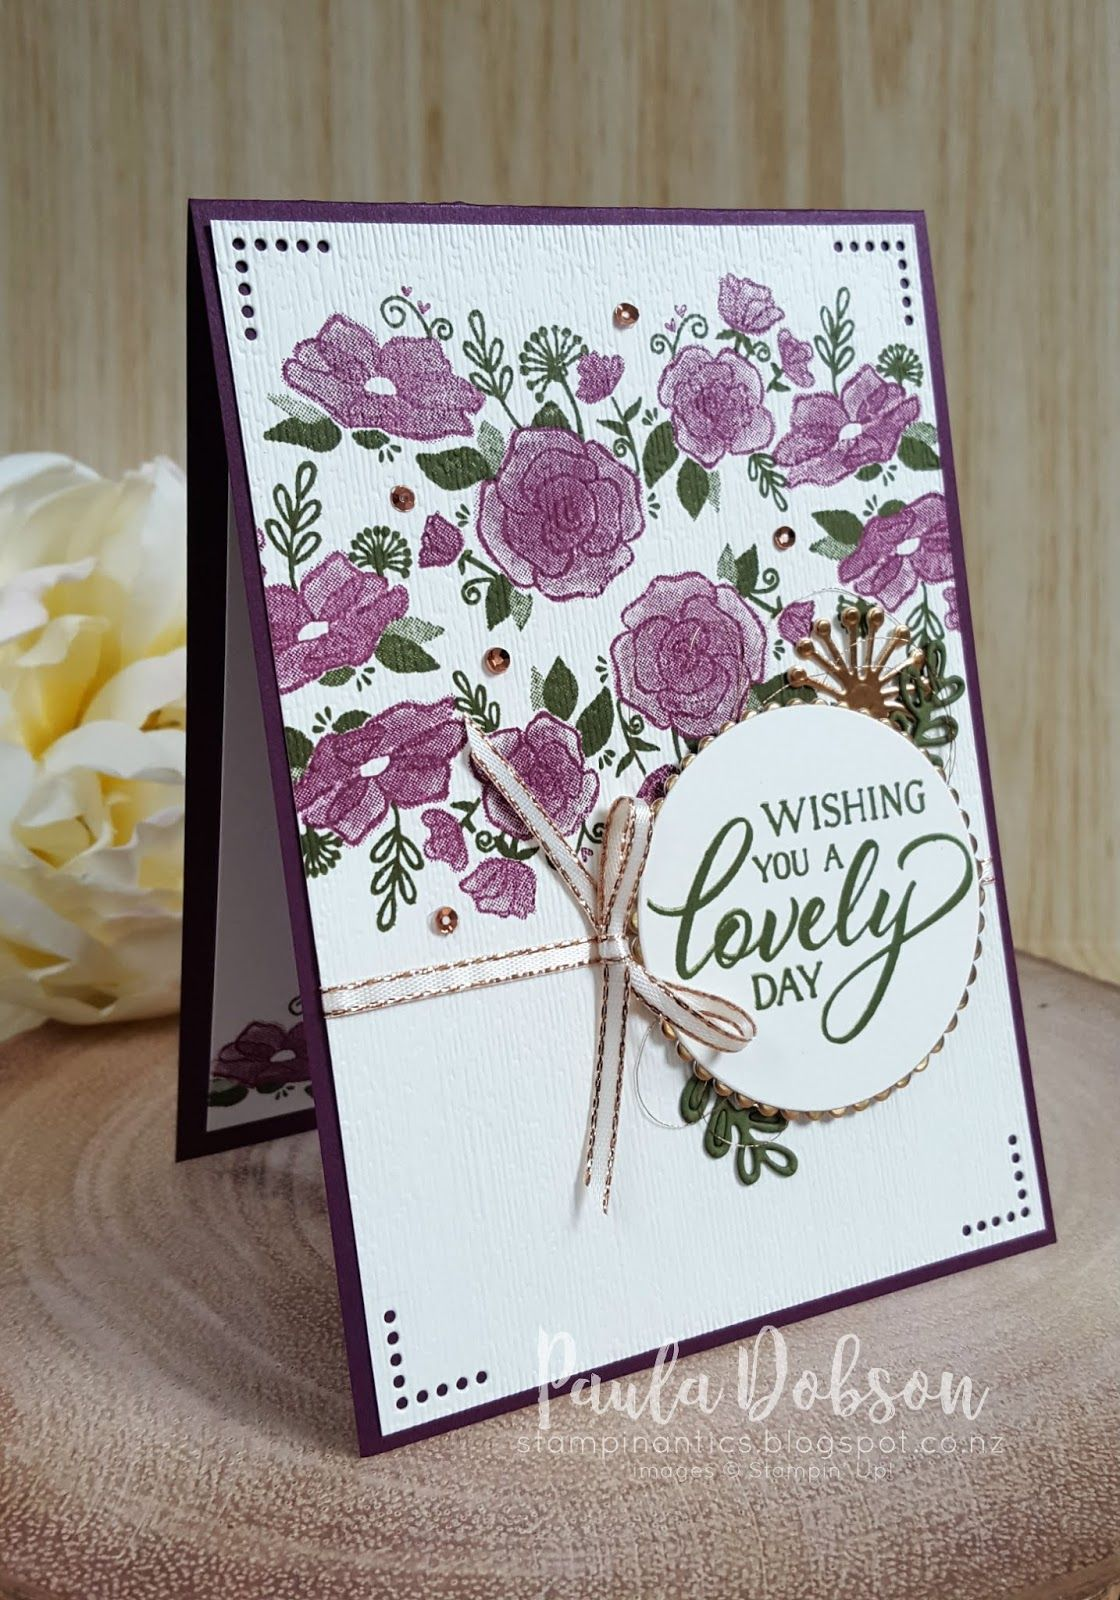 A Sneak Peek Stamp To Share Blog Hop Card Craft Stampin Up Cards Cards Handmade